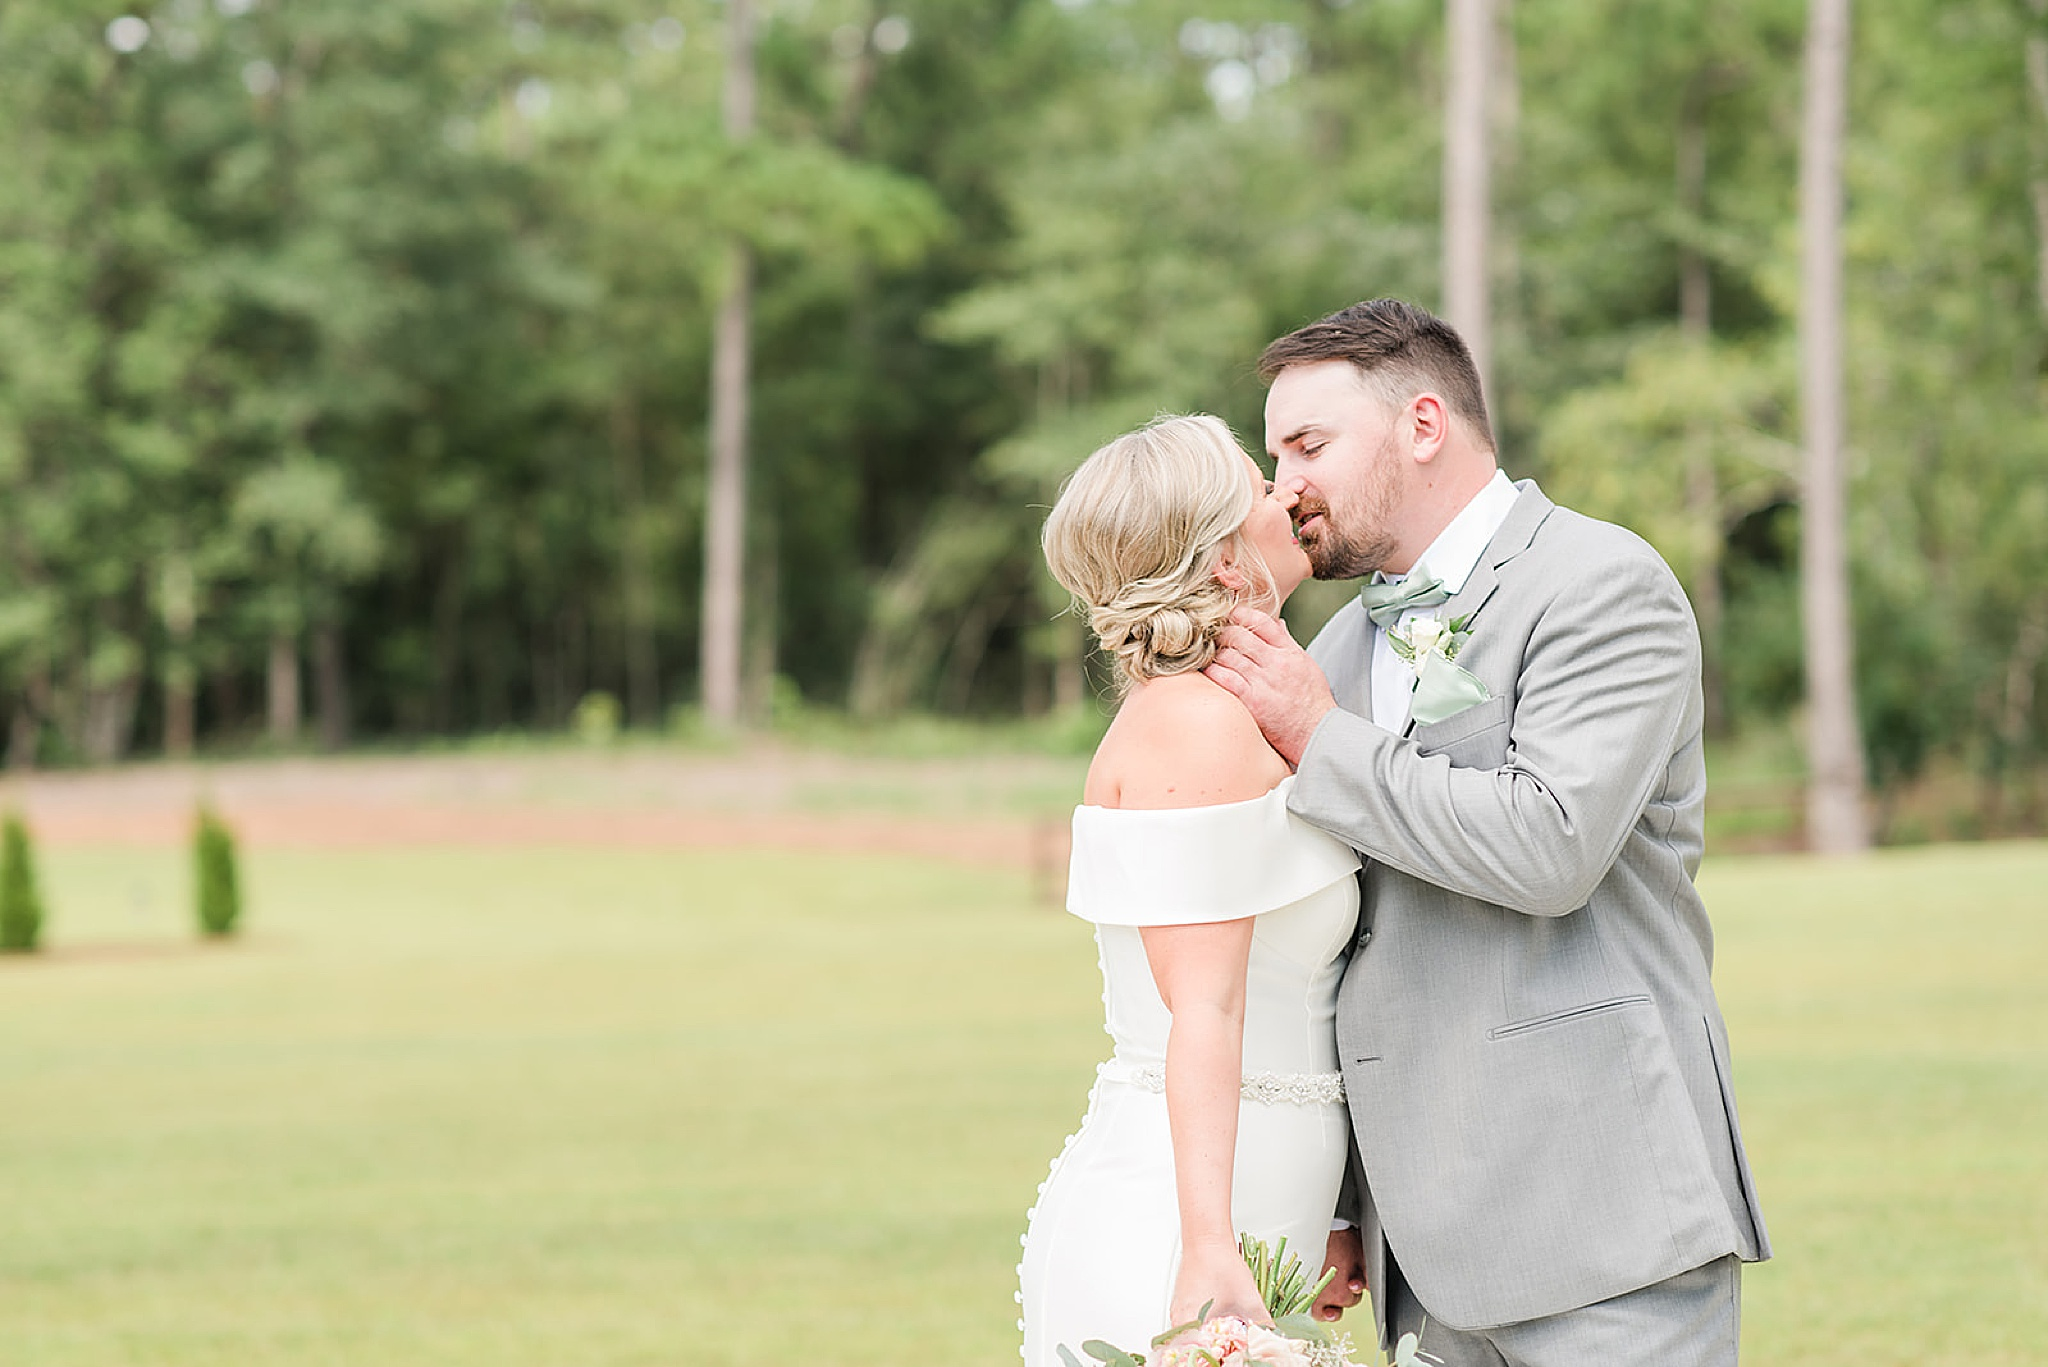 newlyweds kiss before Izenstone summer wedding